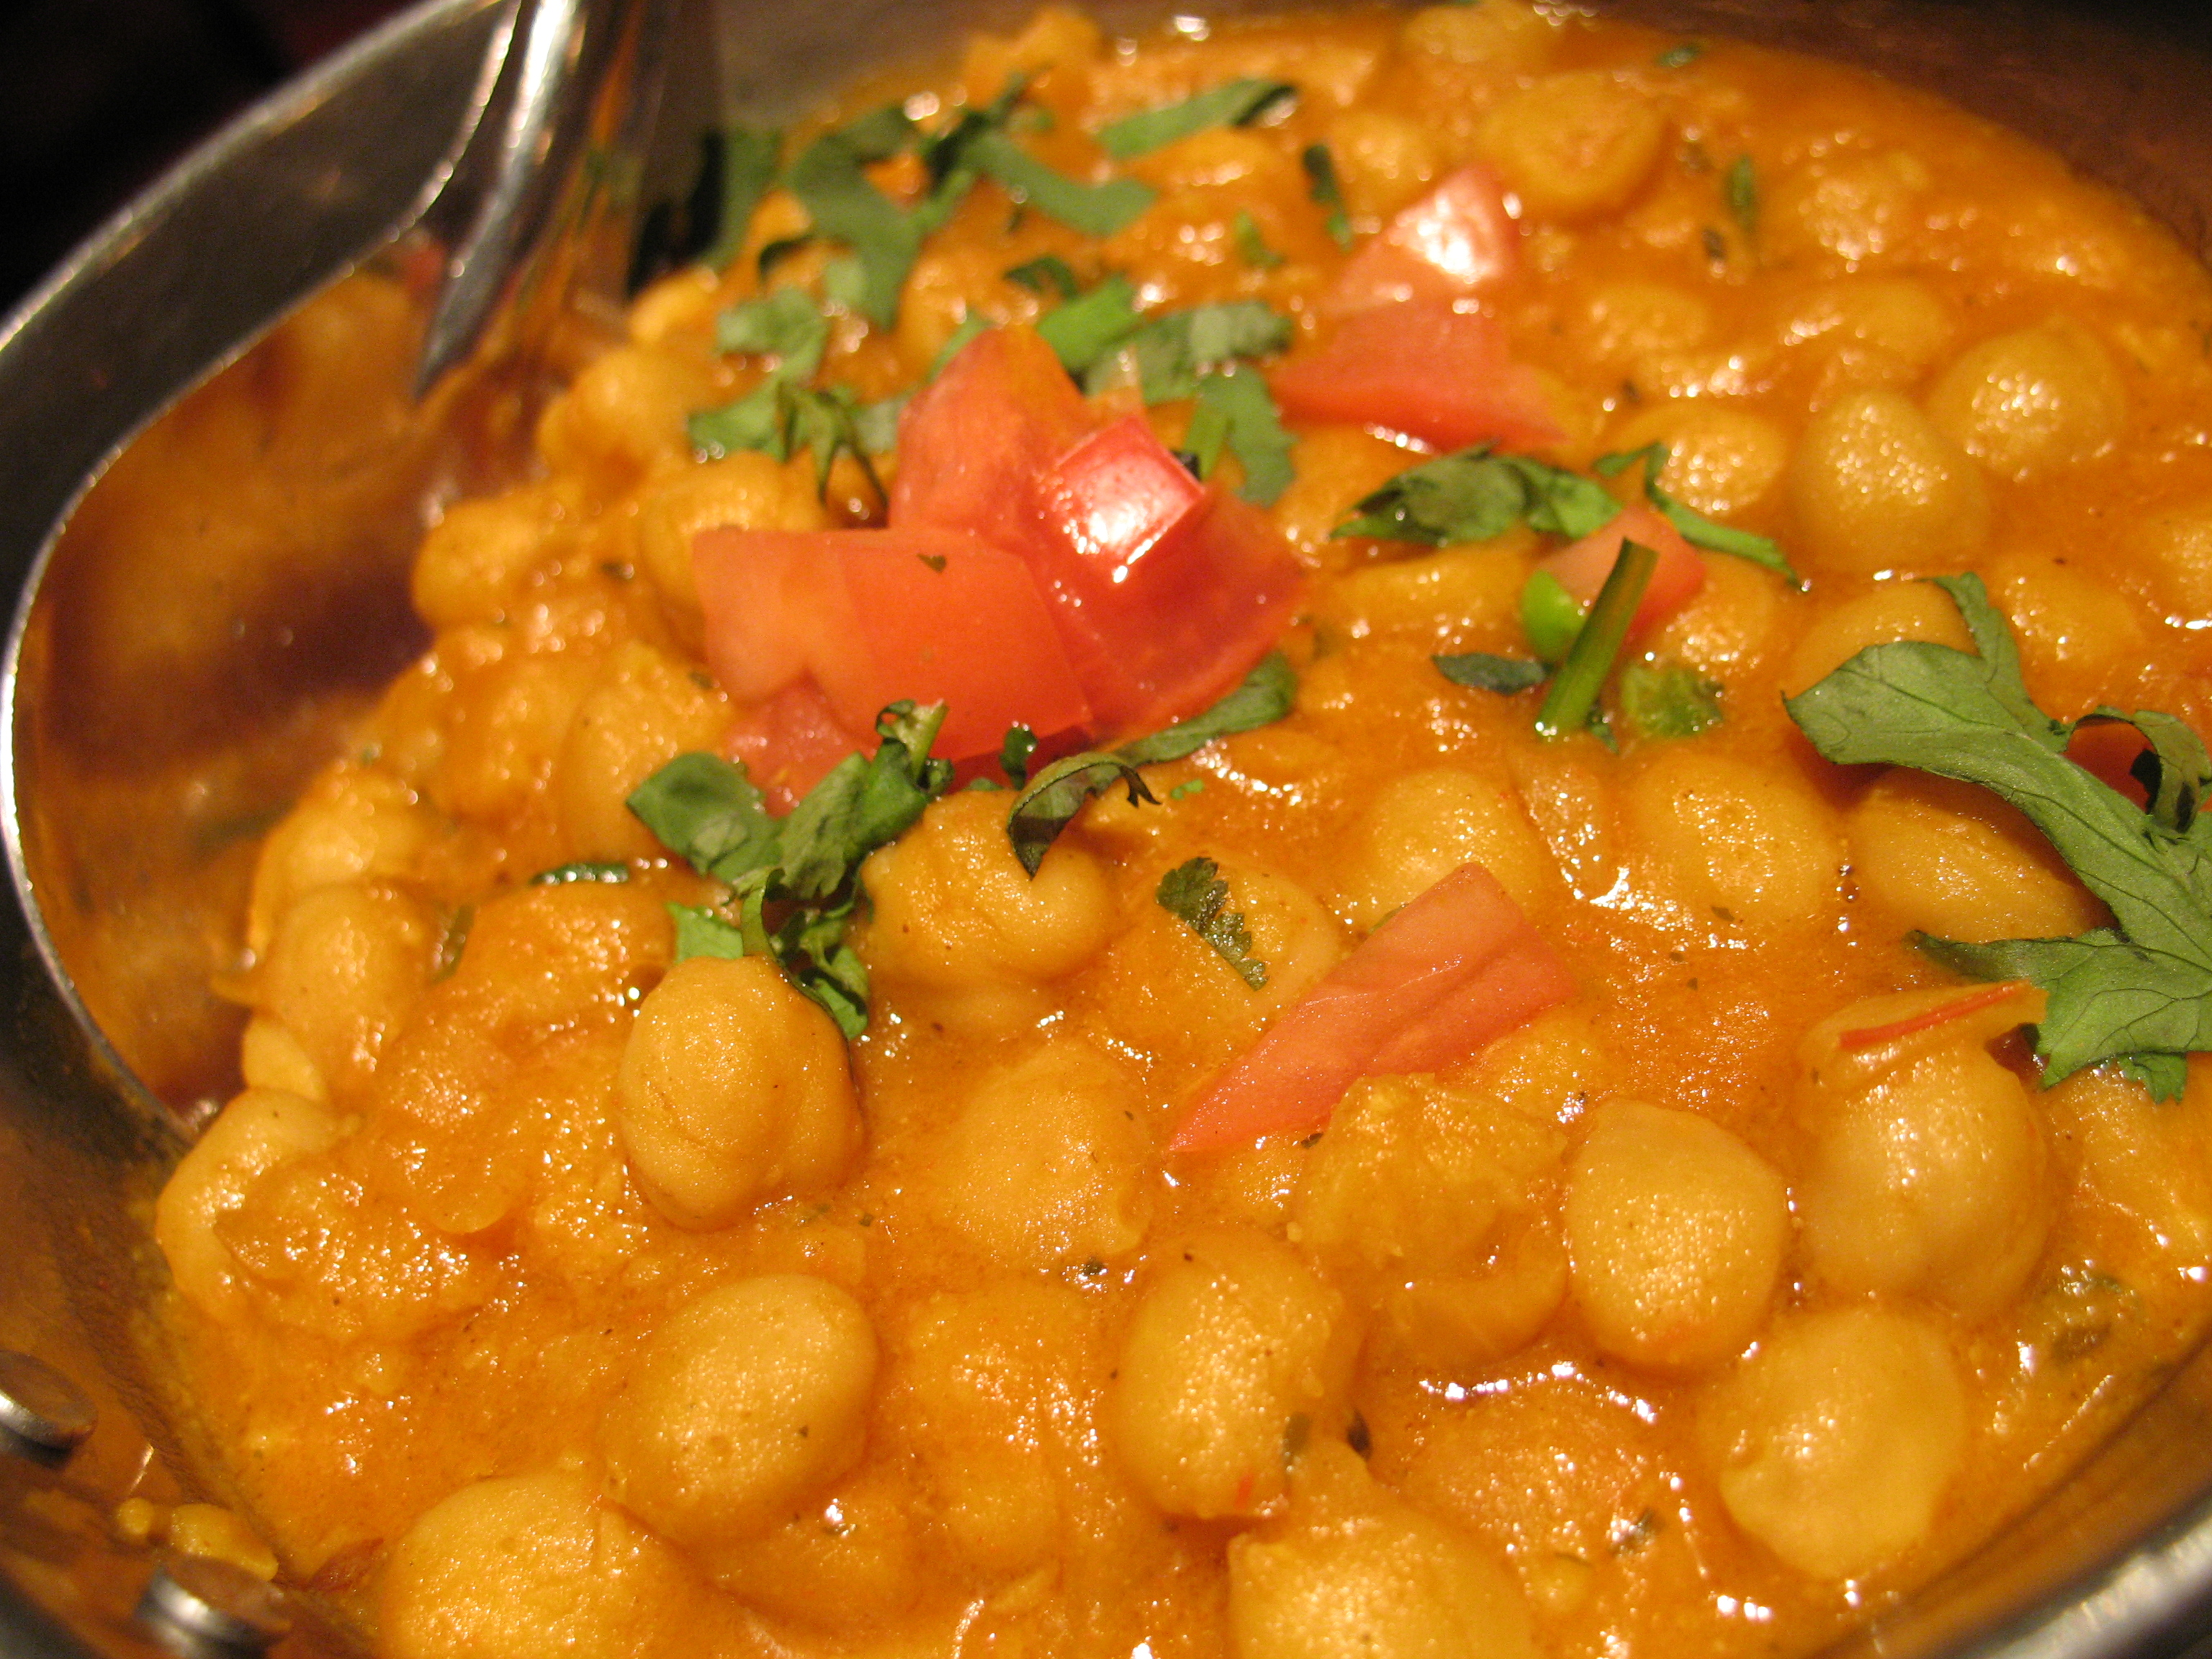 File:Chana masala.jpg - Wikimedia Commons